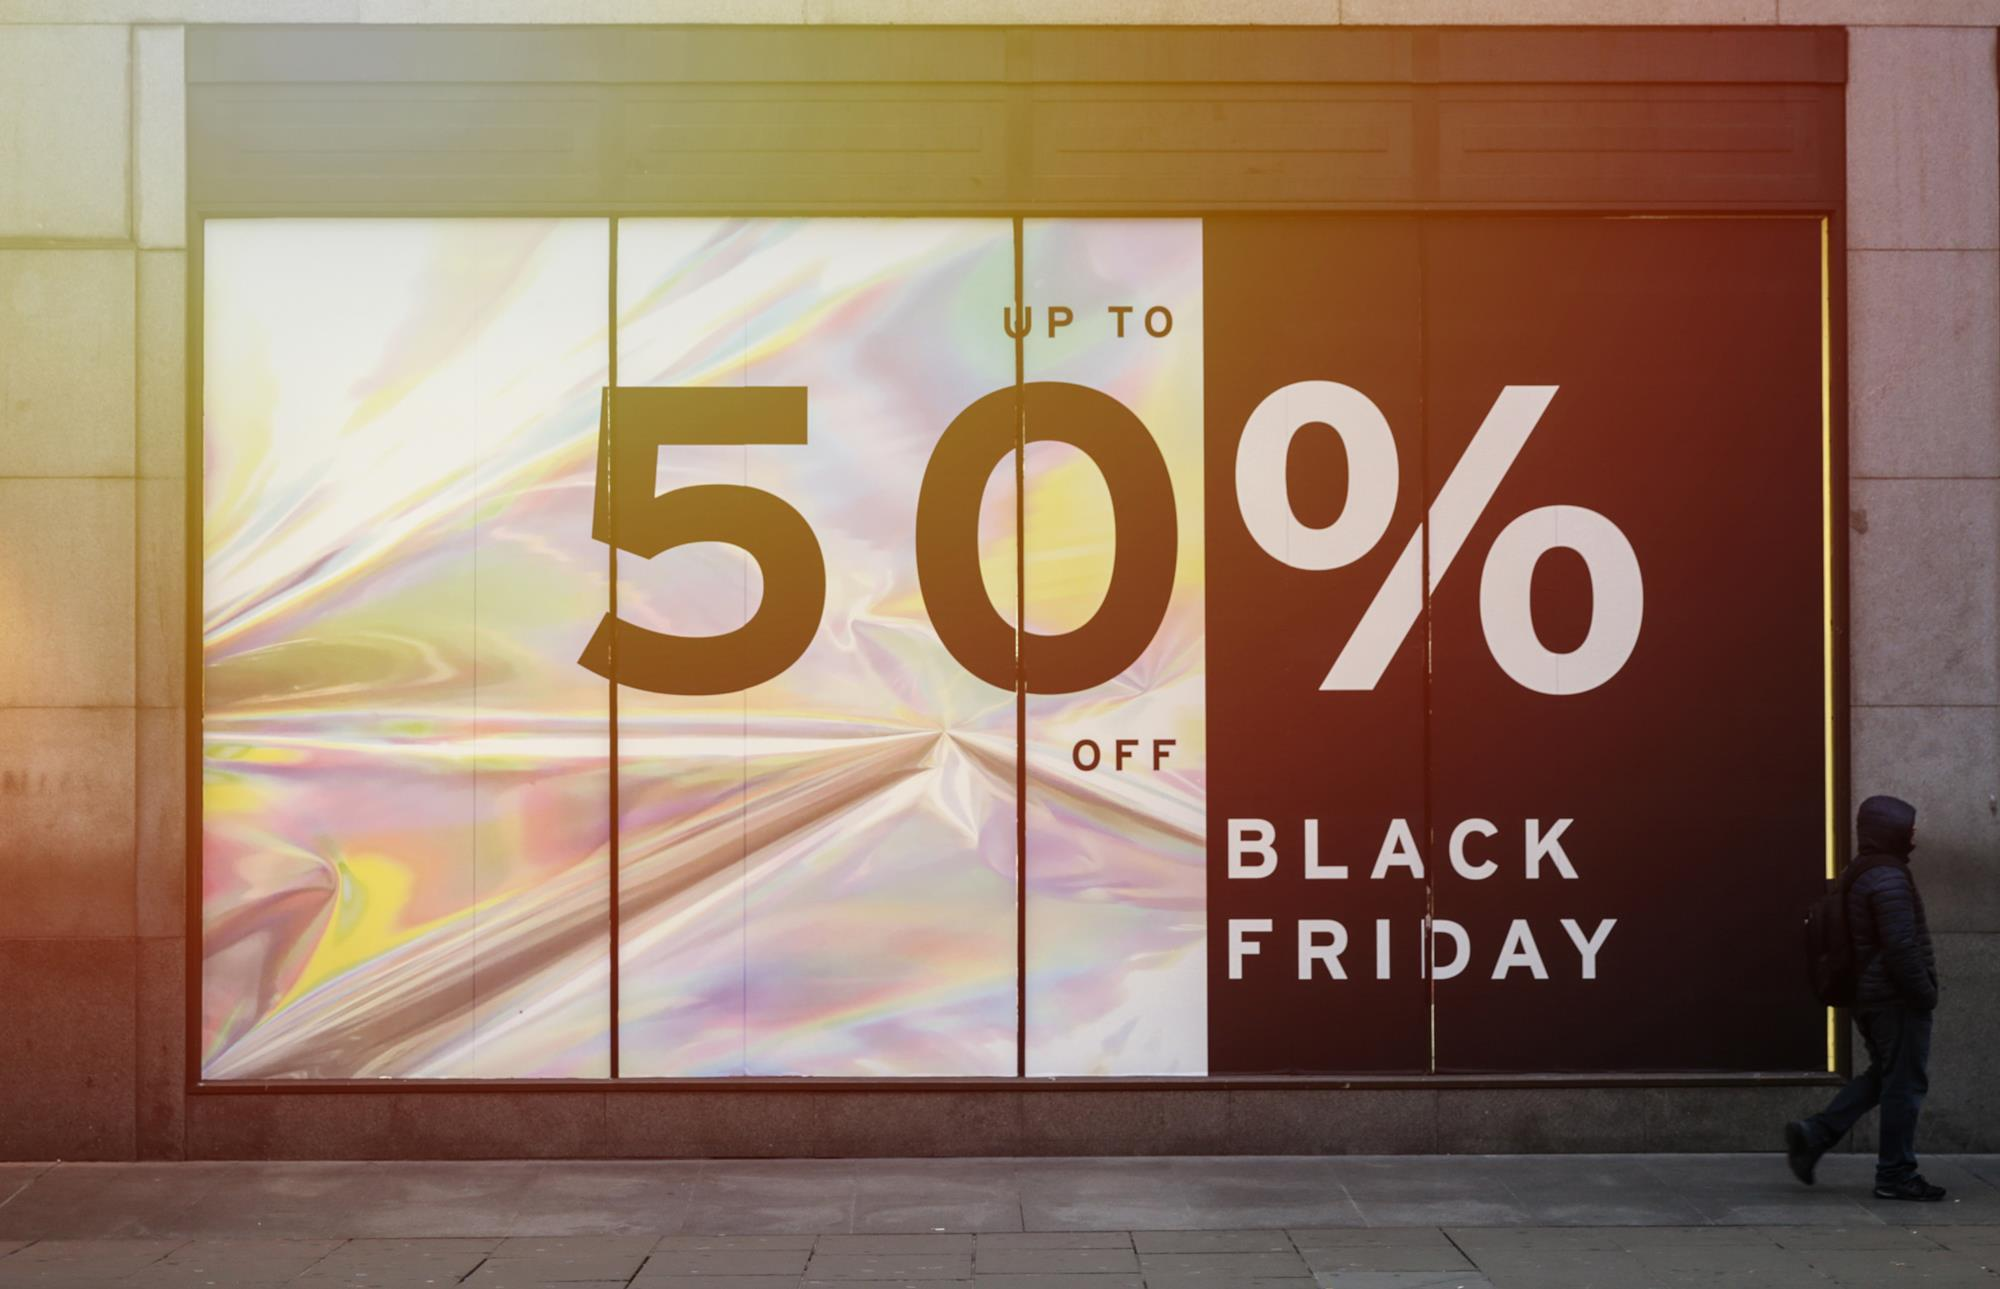 Black Friday 2019: What will happen and how to get it right